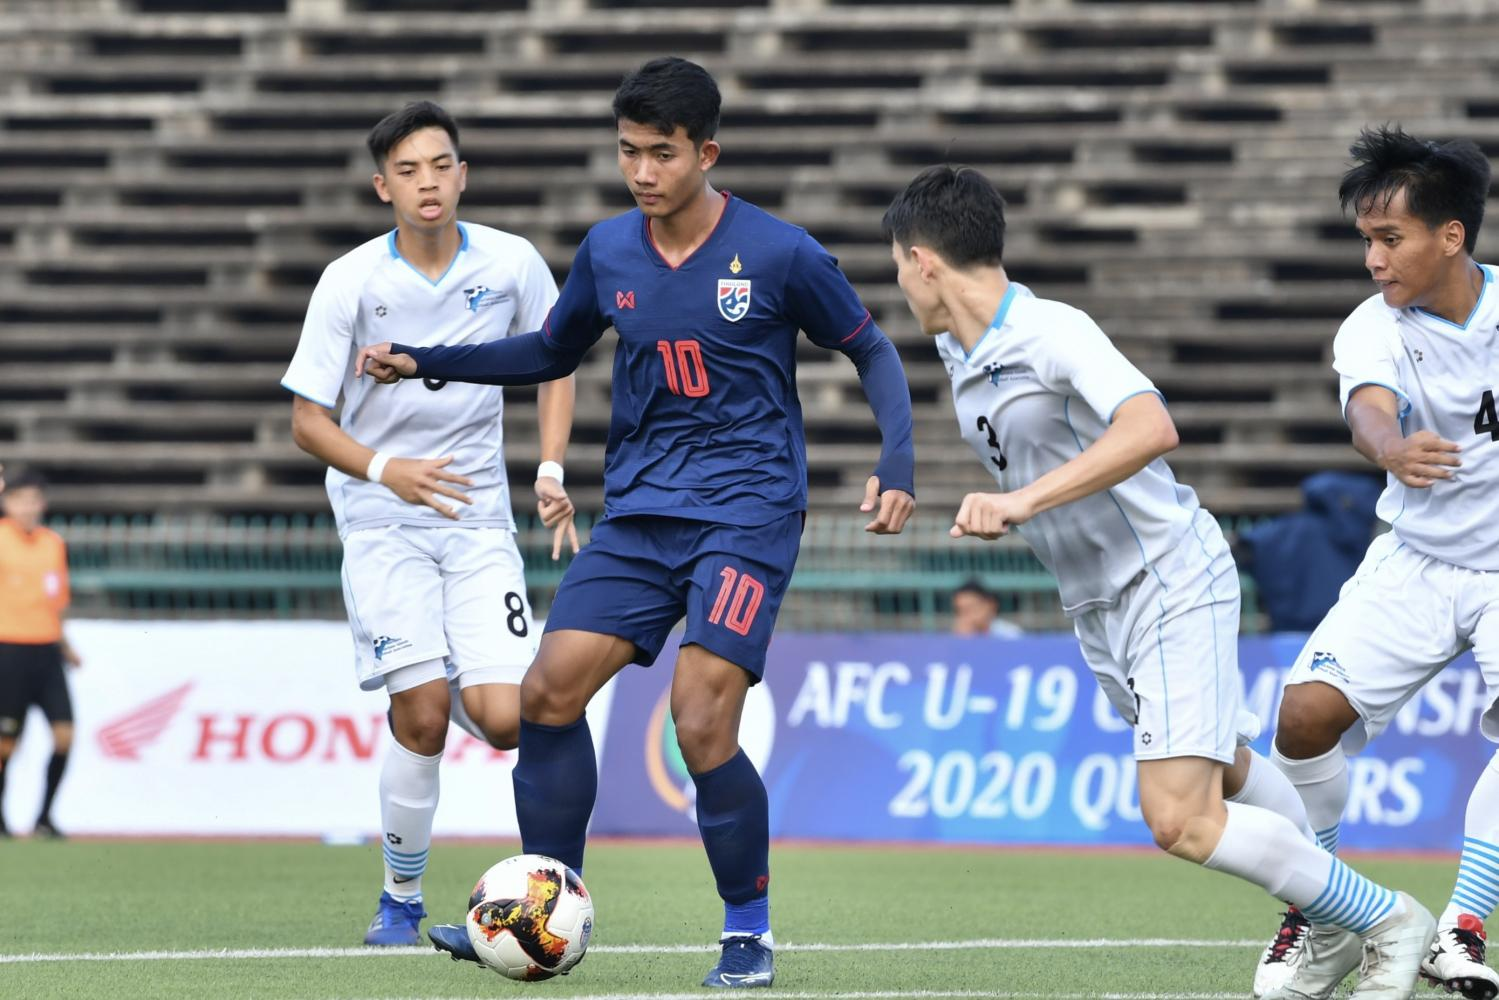 Thailand U19 forward Suphanat Mueanta, No.10, in action against Northern Mariana Islands in Cambodia on Wednesday.